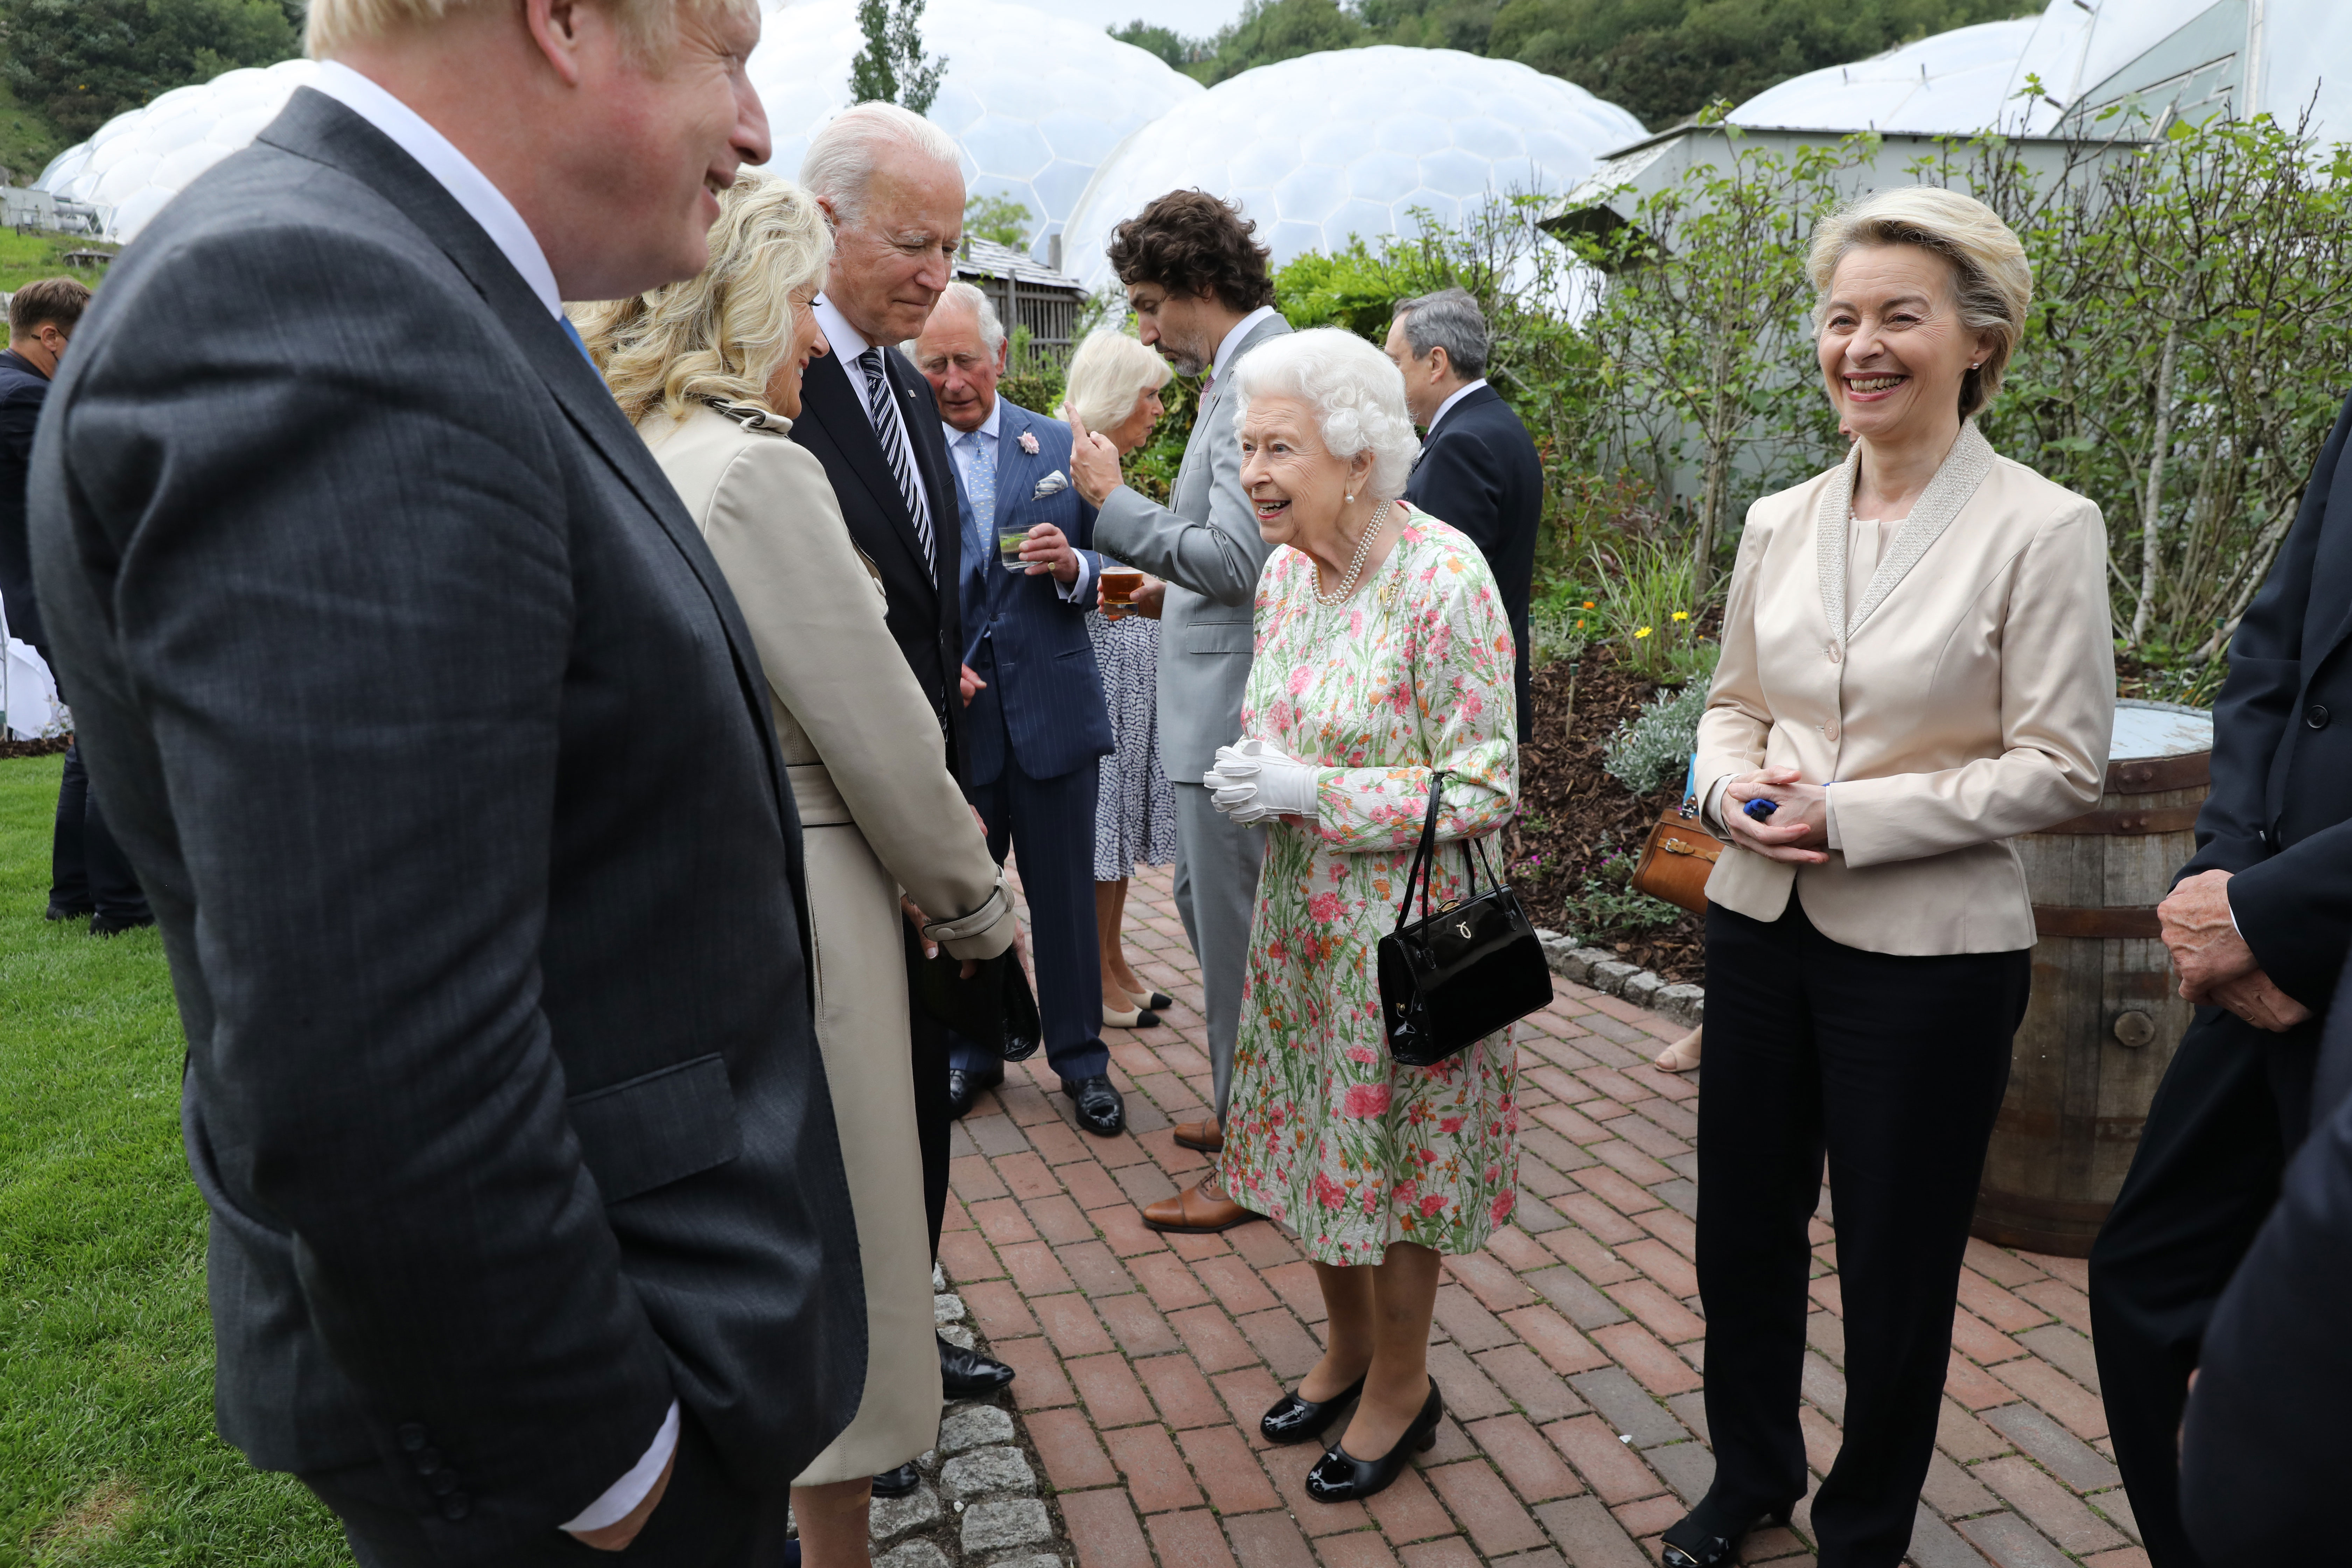 World leaders and Queen Elizabeth II attend a reception at the Eden Project in England on June 11.